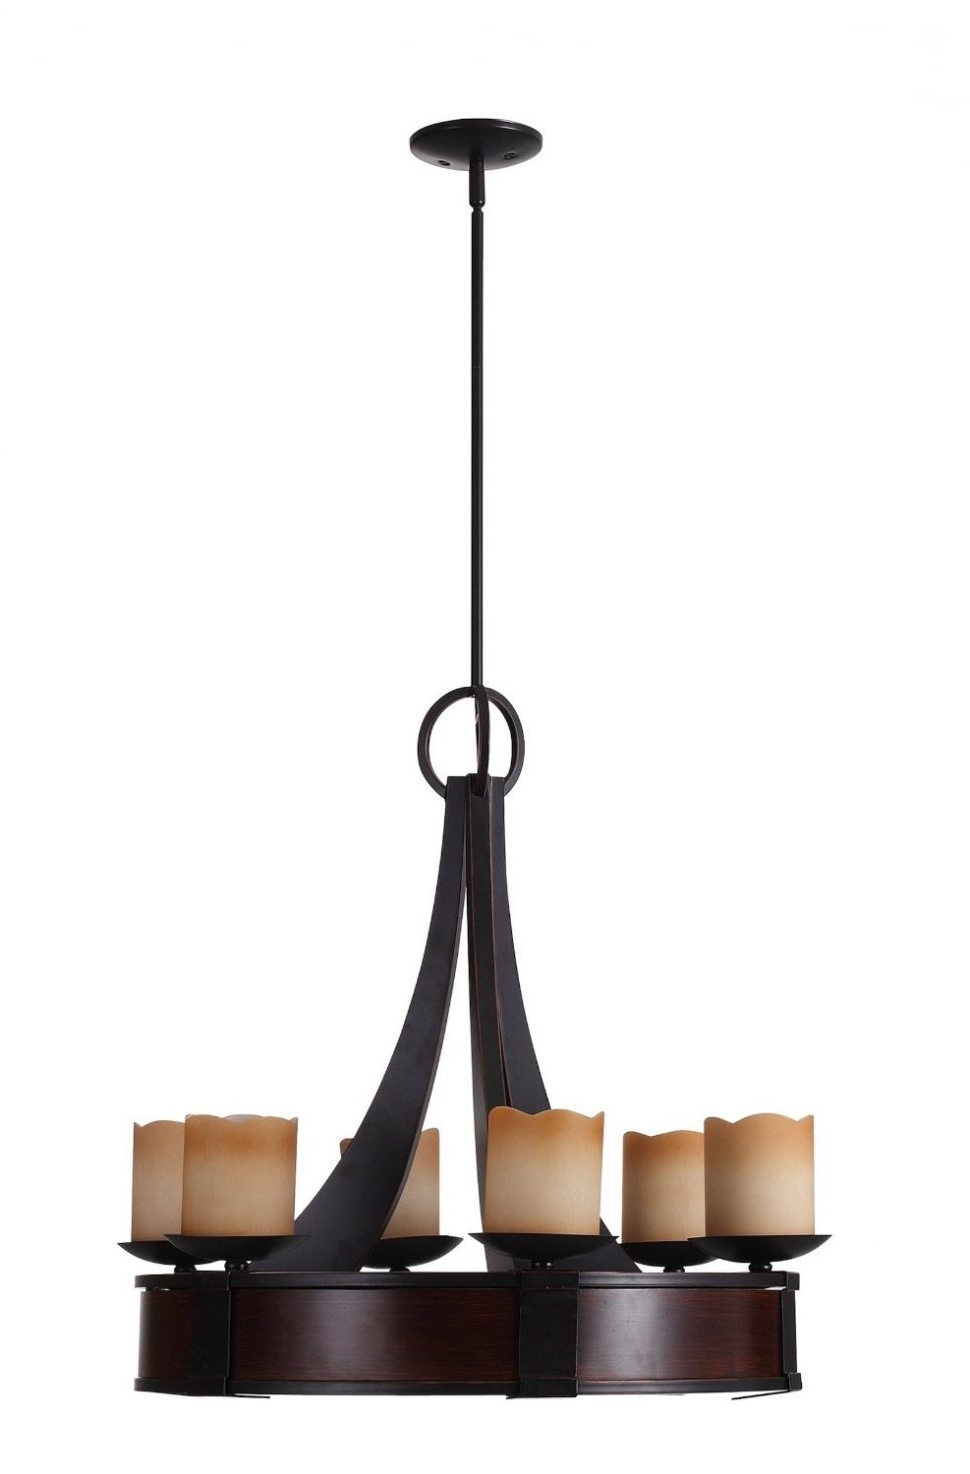 2018 Chandeliers Design : Awesome Rustic Wrought Iron Chandelier Wood And With Modern Wrought Iron Chandeliers (View 7 of 15)